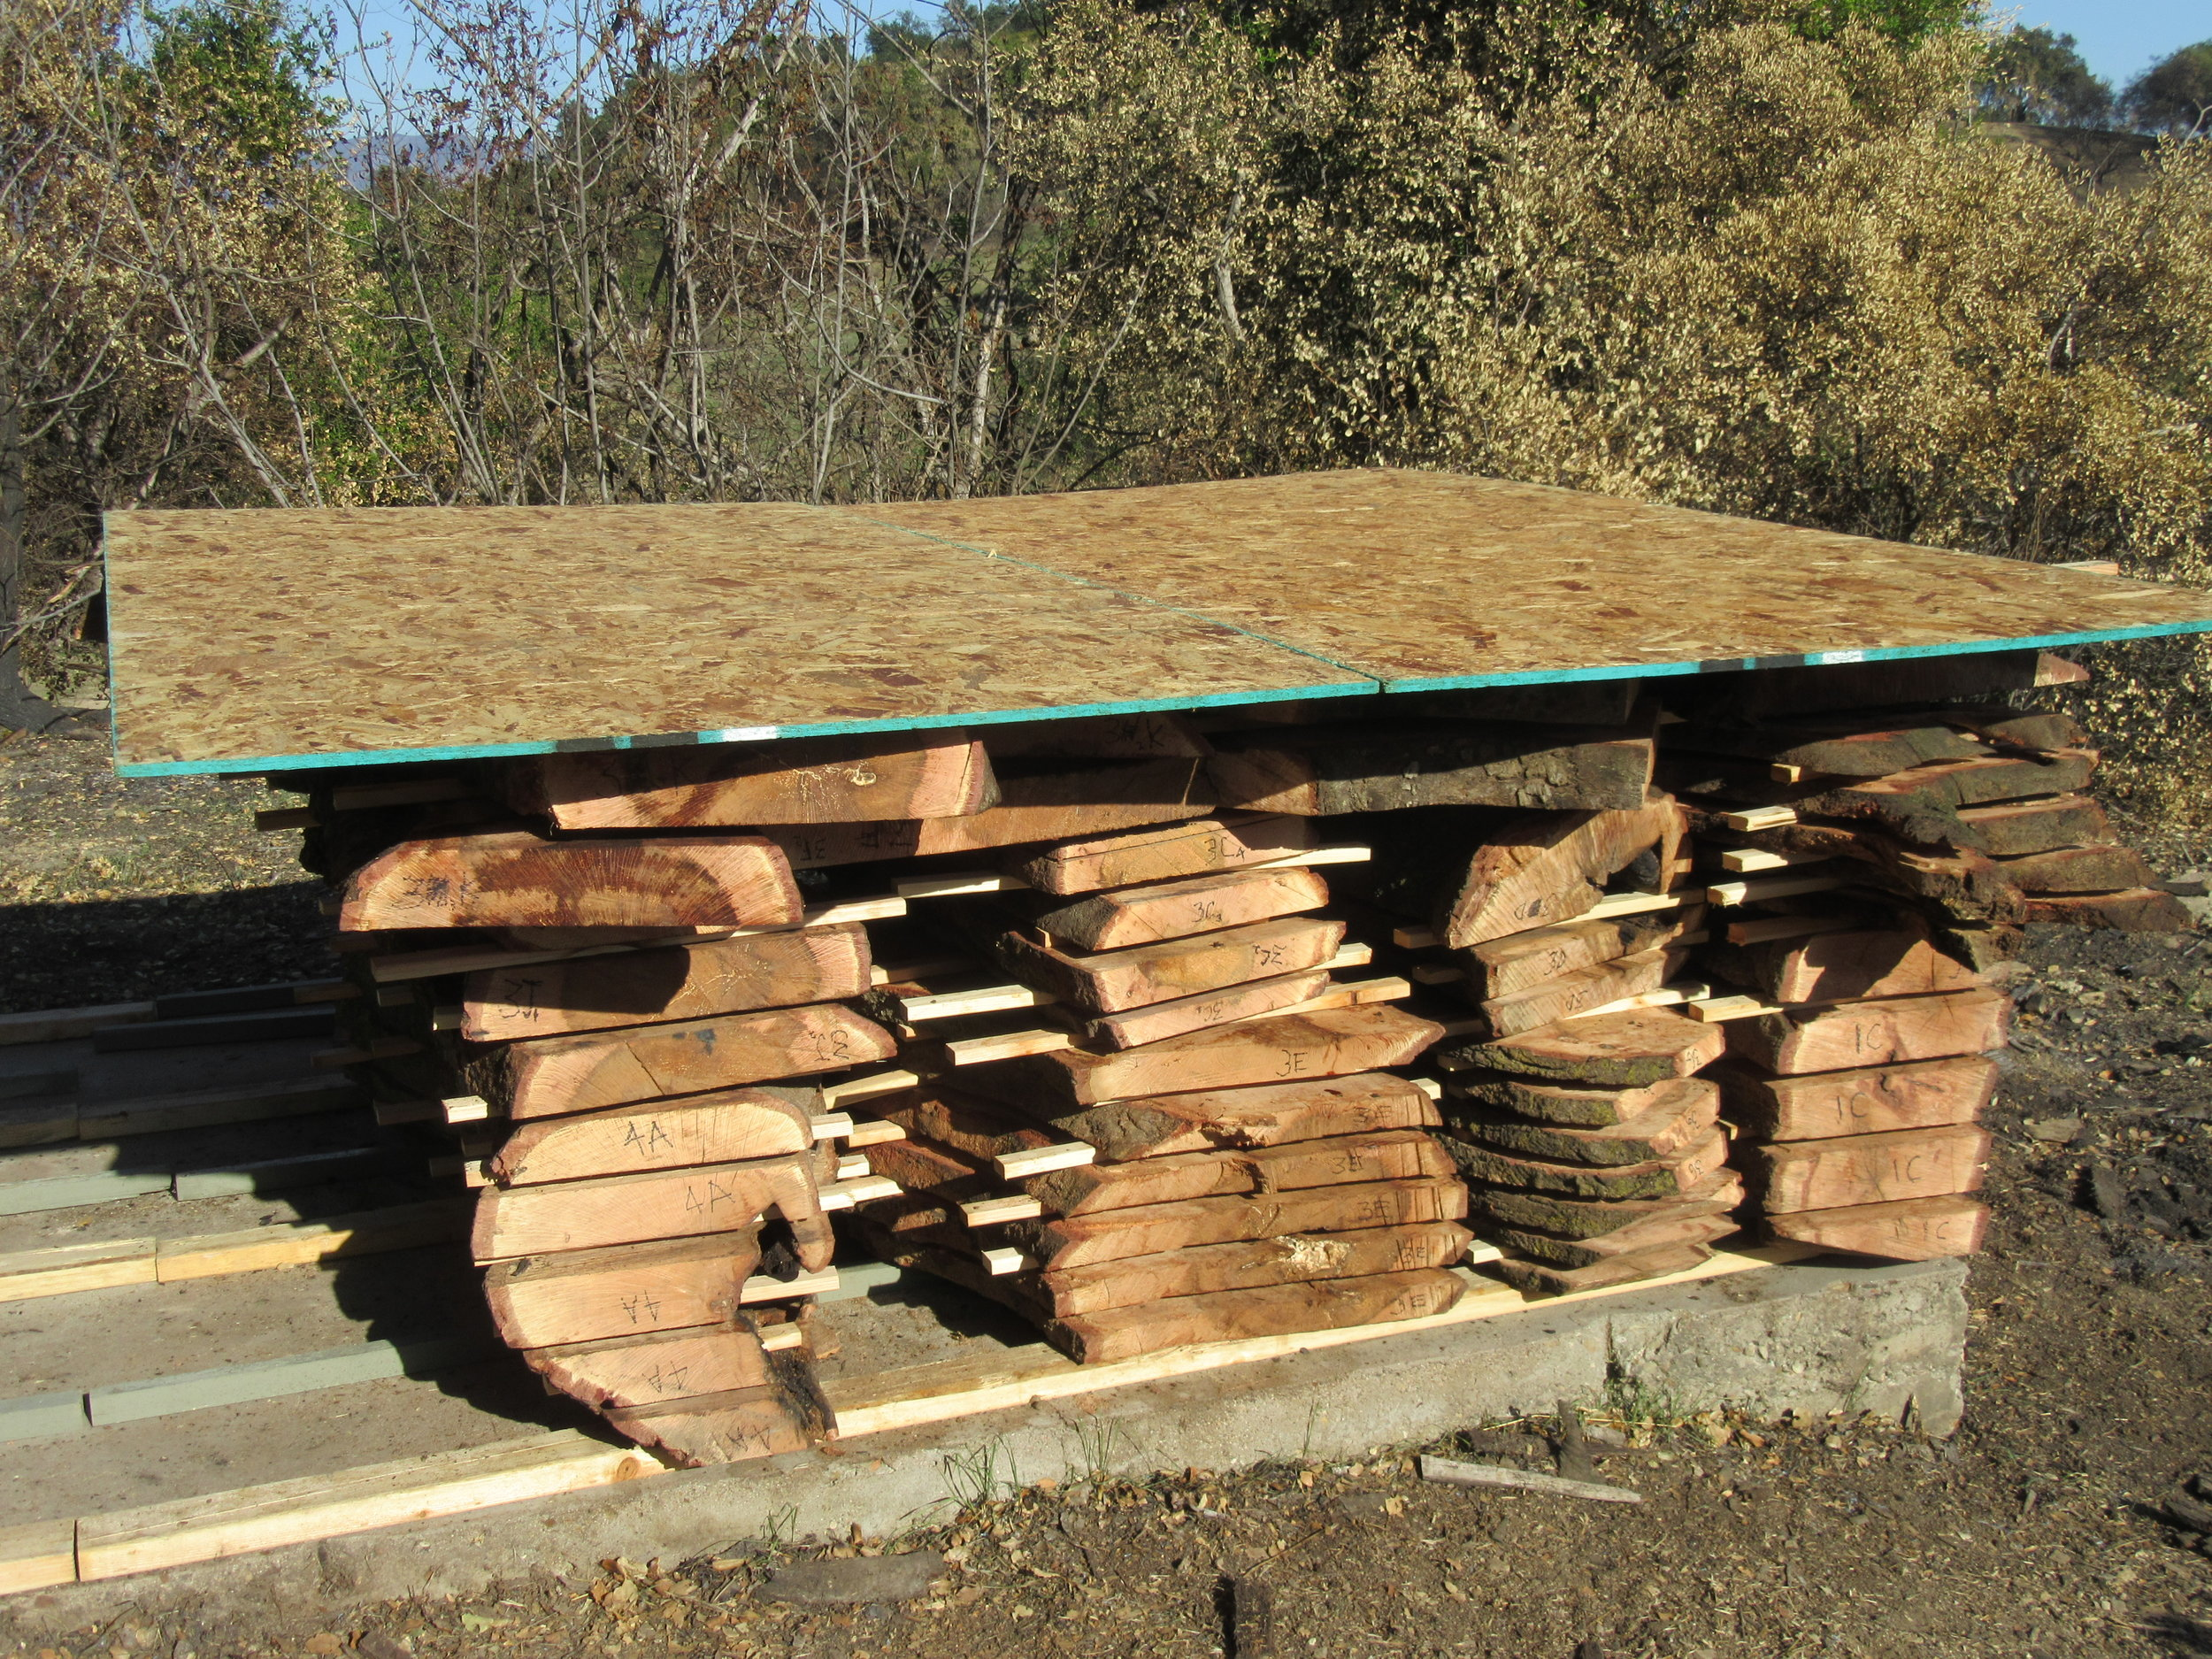 MILLED AND STACKED WOOD from Baba's Tree at Meher Mount. Each plank is tagged with a number that corresponds to its description in the inventory. (Photo: Sam Ervin, February 6, 2018)